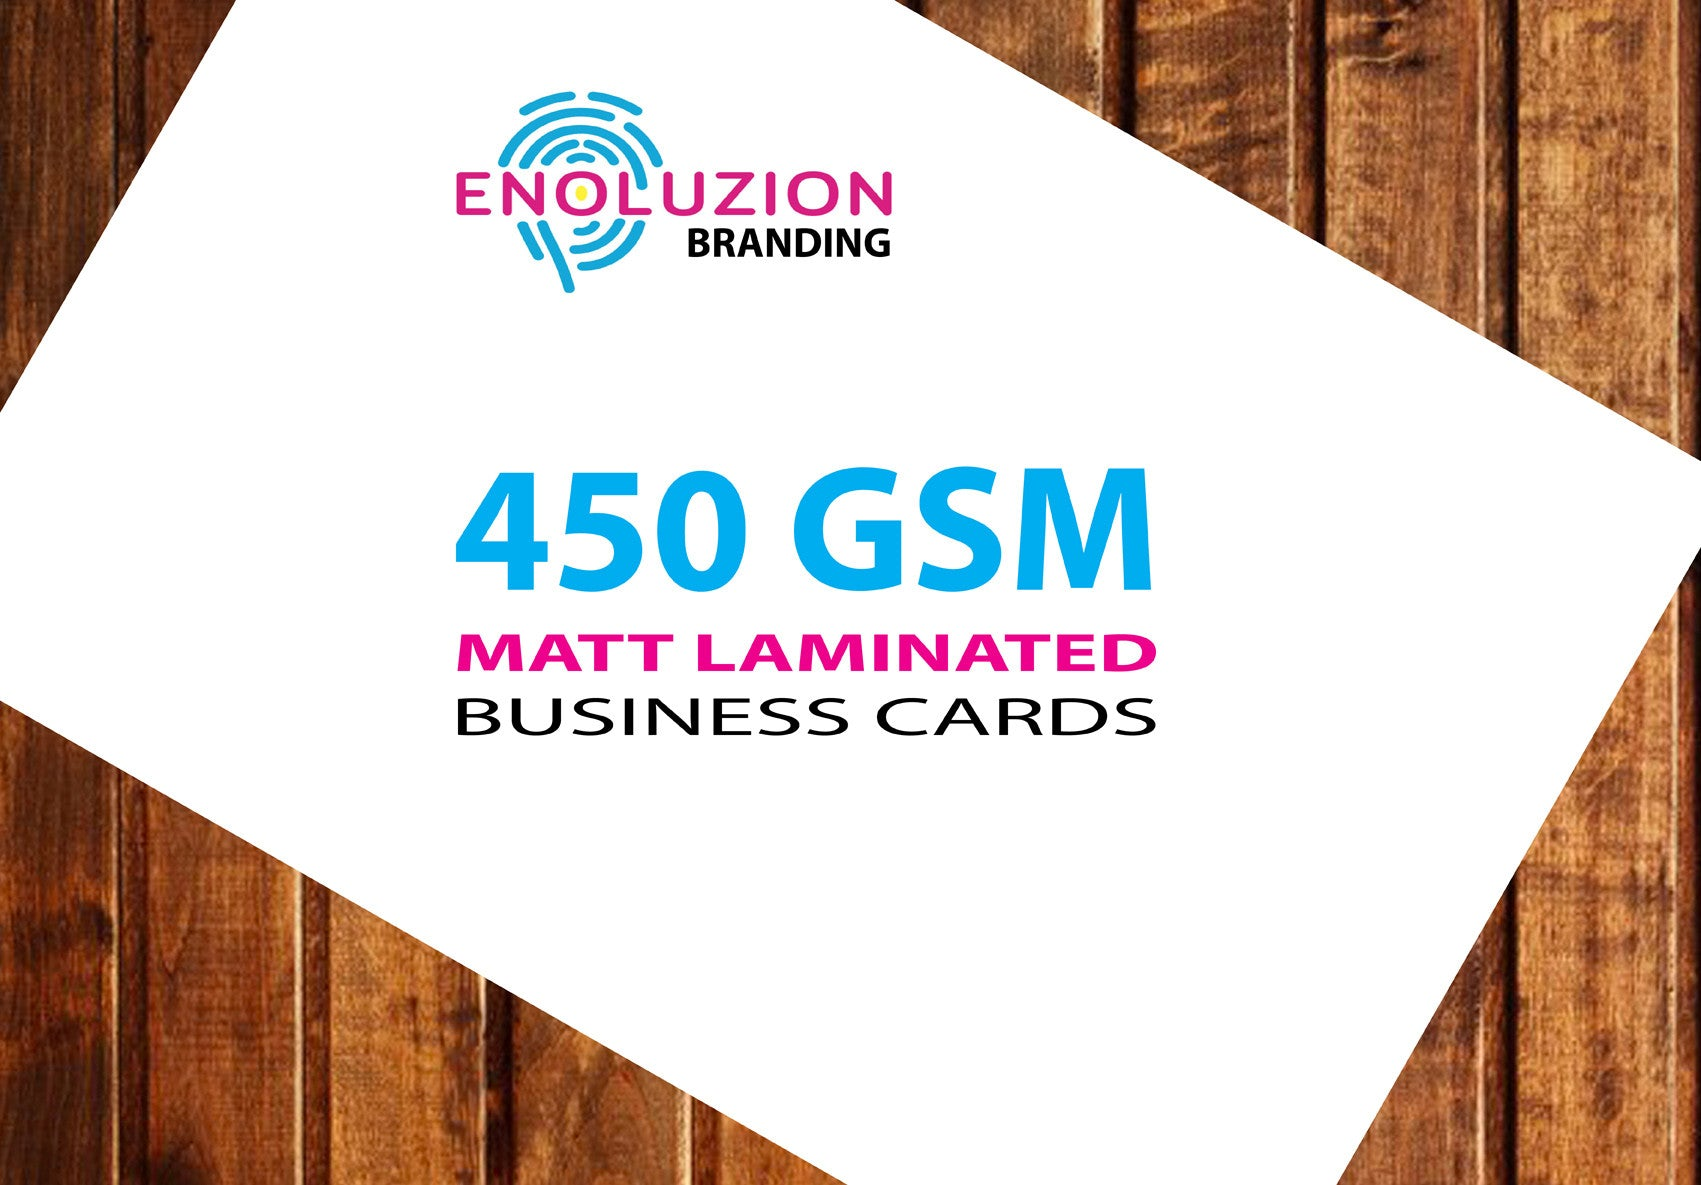 Business cards 450gsm matt laminated gig uk delivery only business cards 450gsm matt laminated gig uk delivery only colourmoves